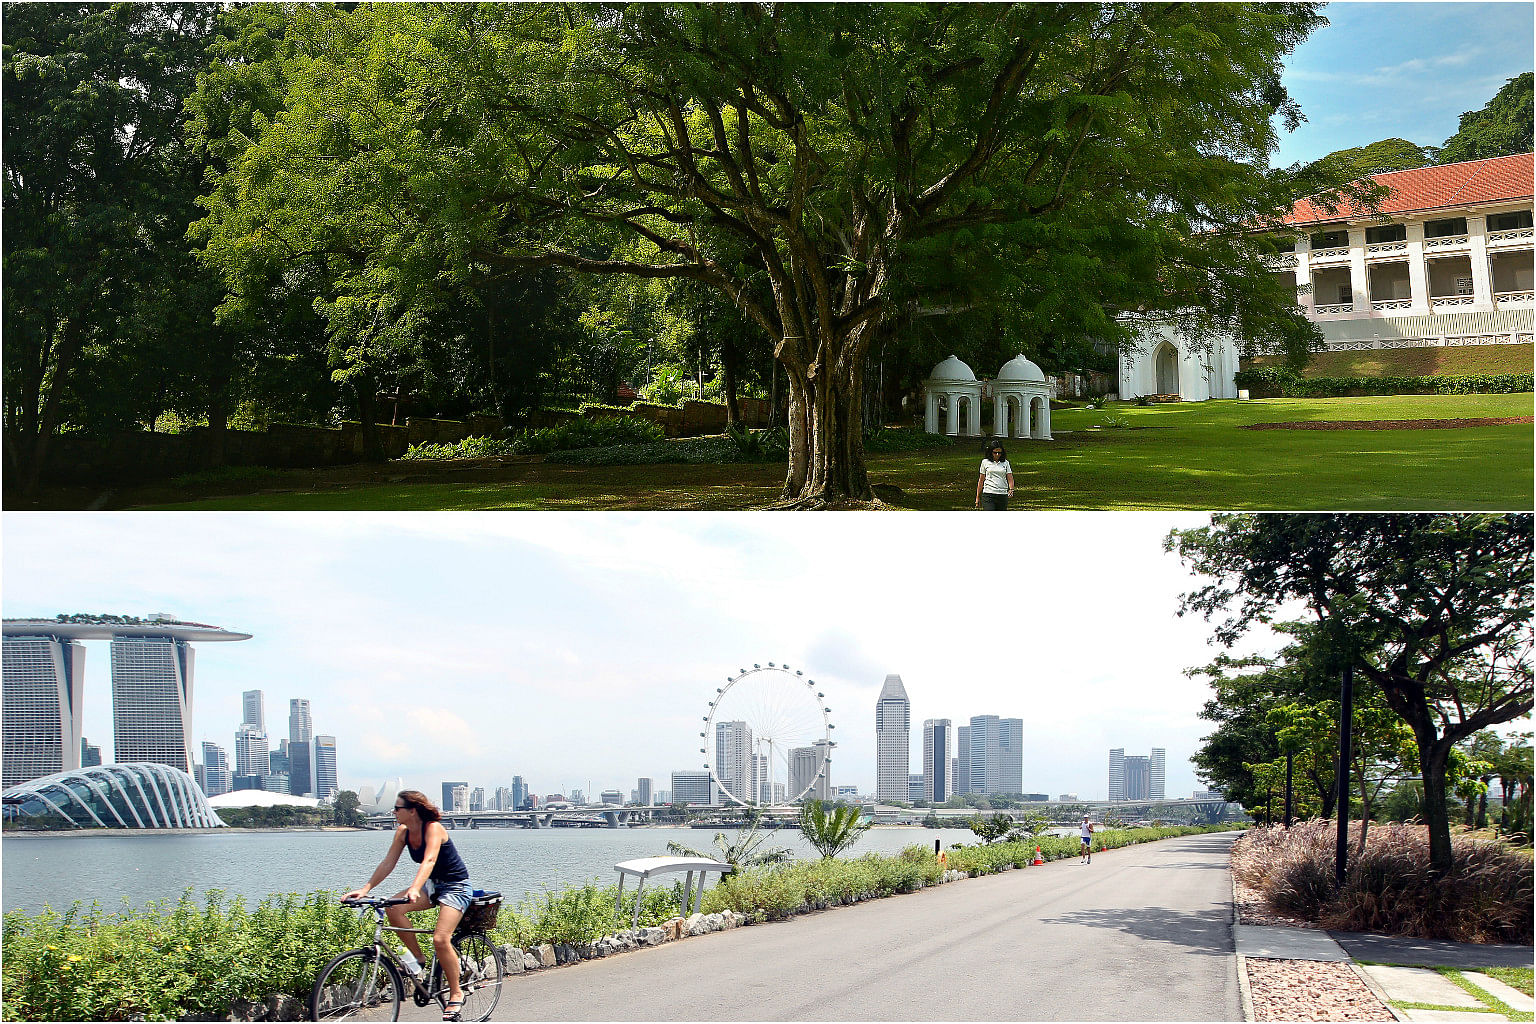 Garden By The Bay East fort canning park, gardensthe bay are potential sites for